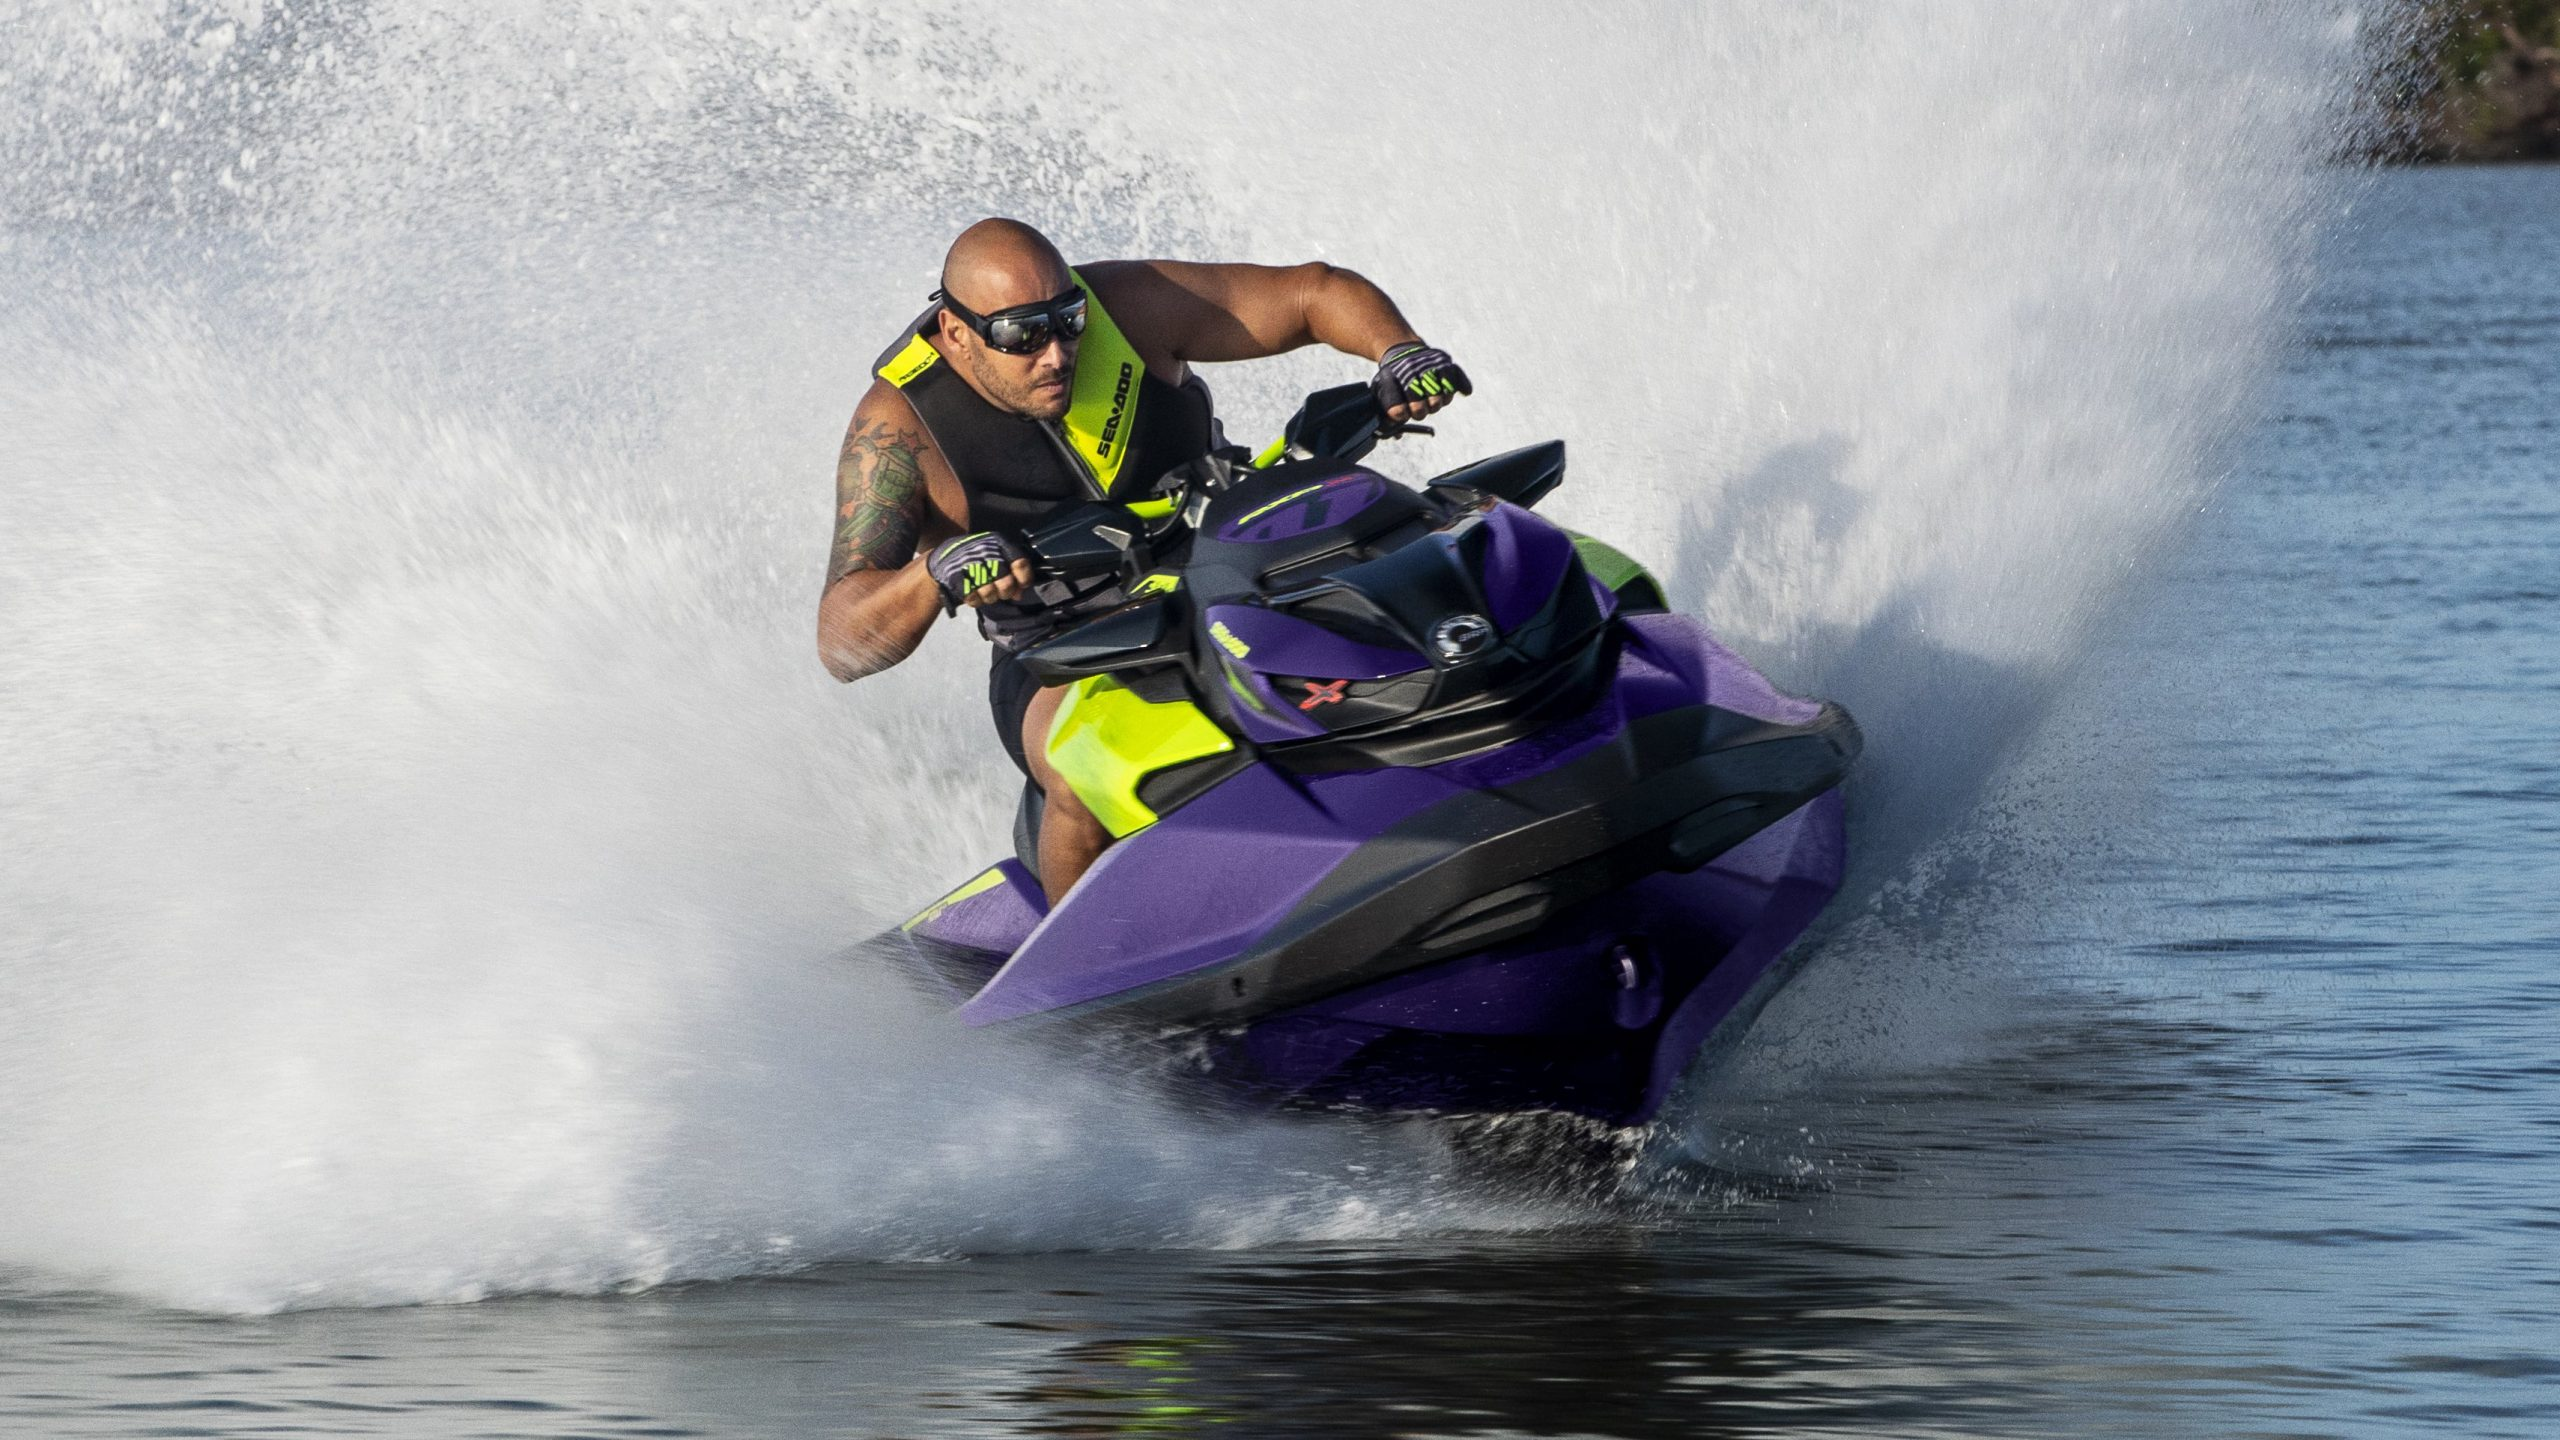 It's official: 2021 Sea-Doo RXP-X 300 faster than 2021 Yamaha GP1800R SVHO